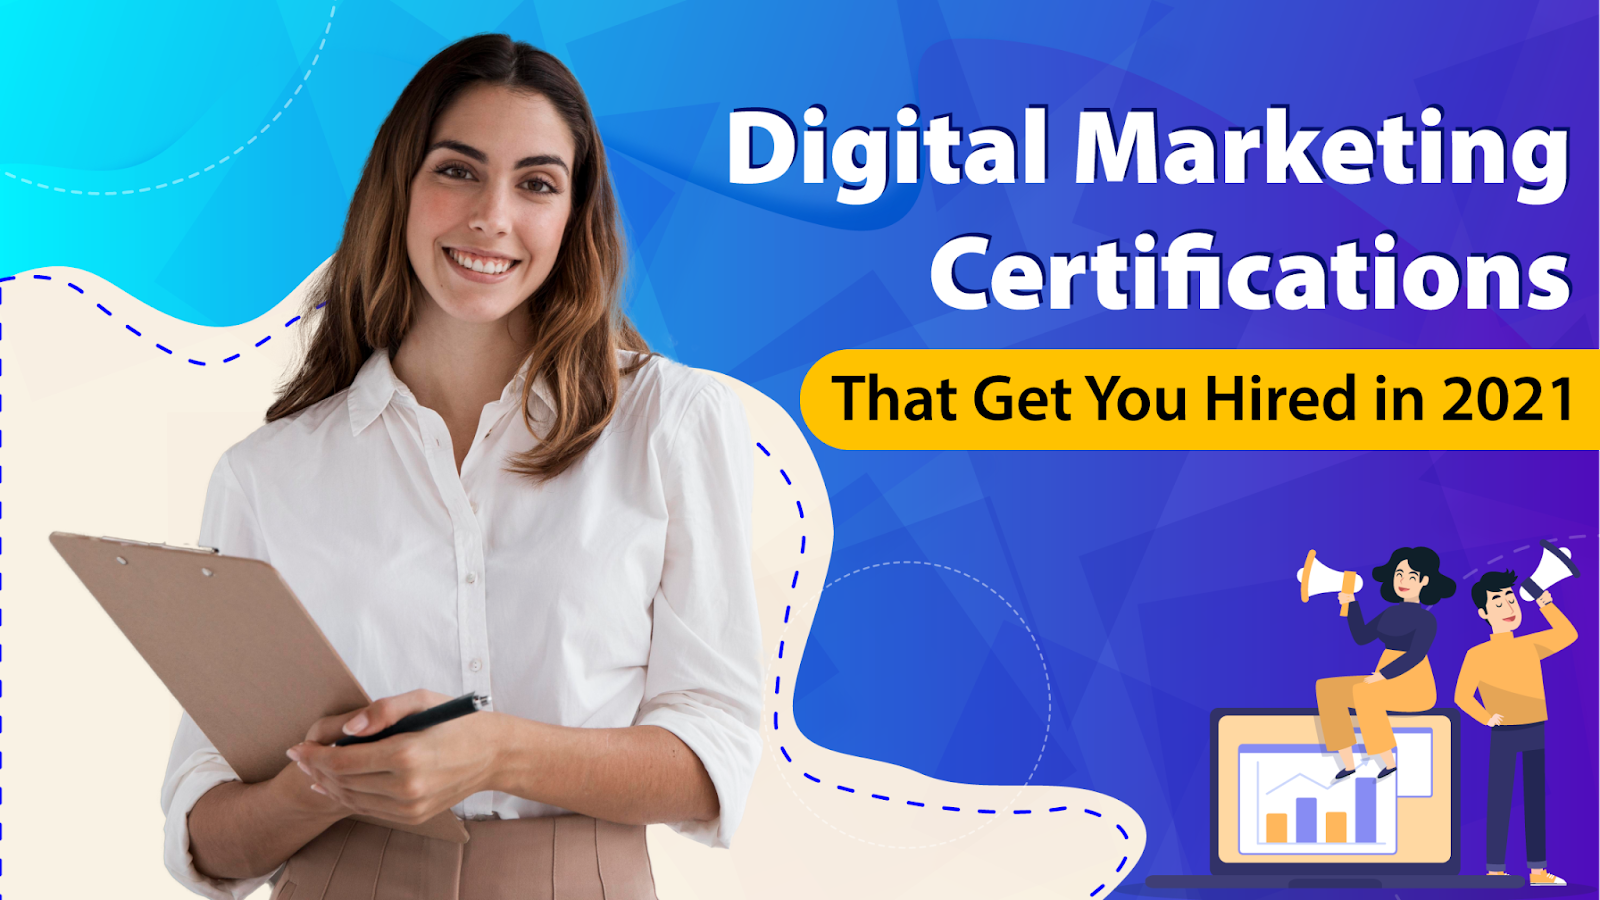 5 Digital Marketing Certifications That Get You Hired in 2021